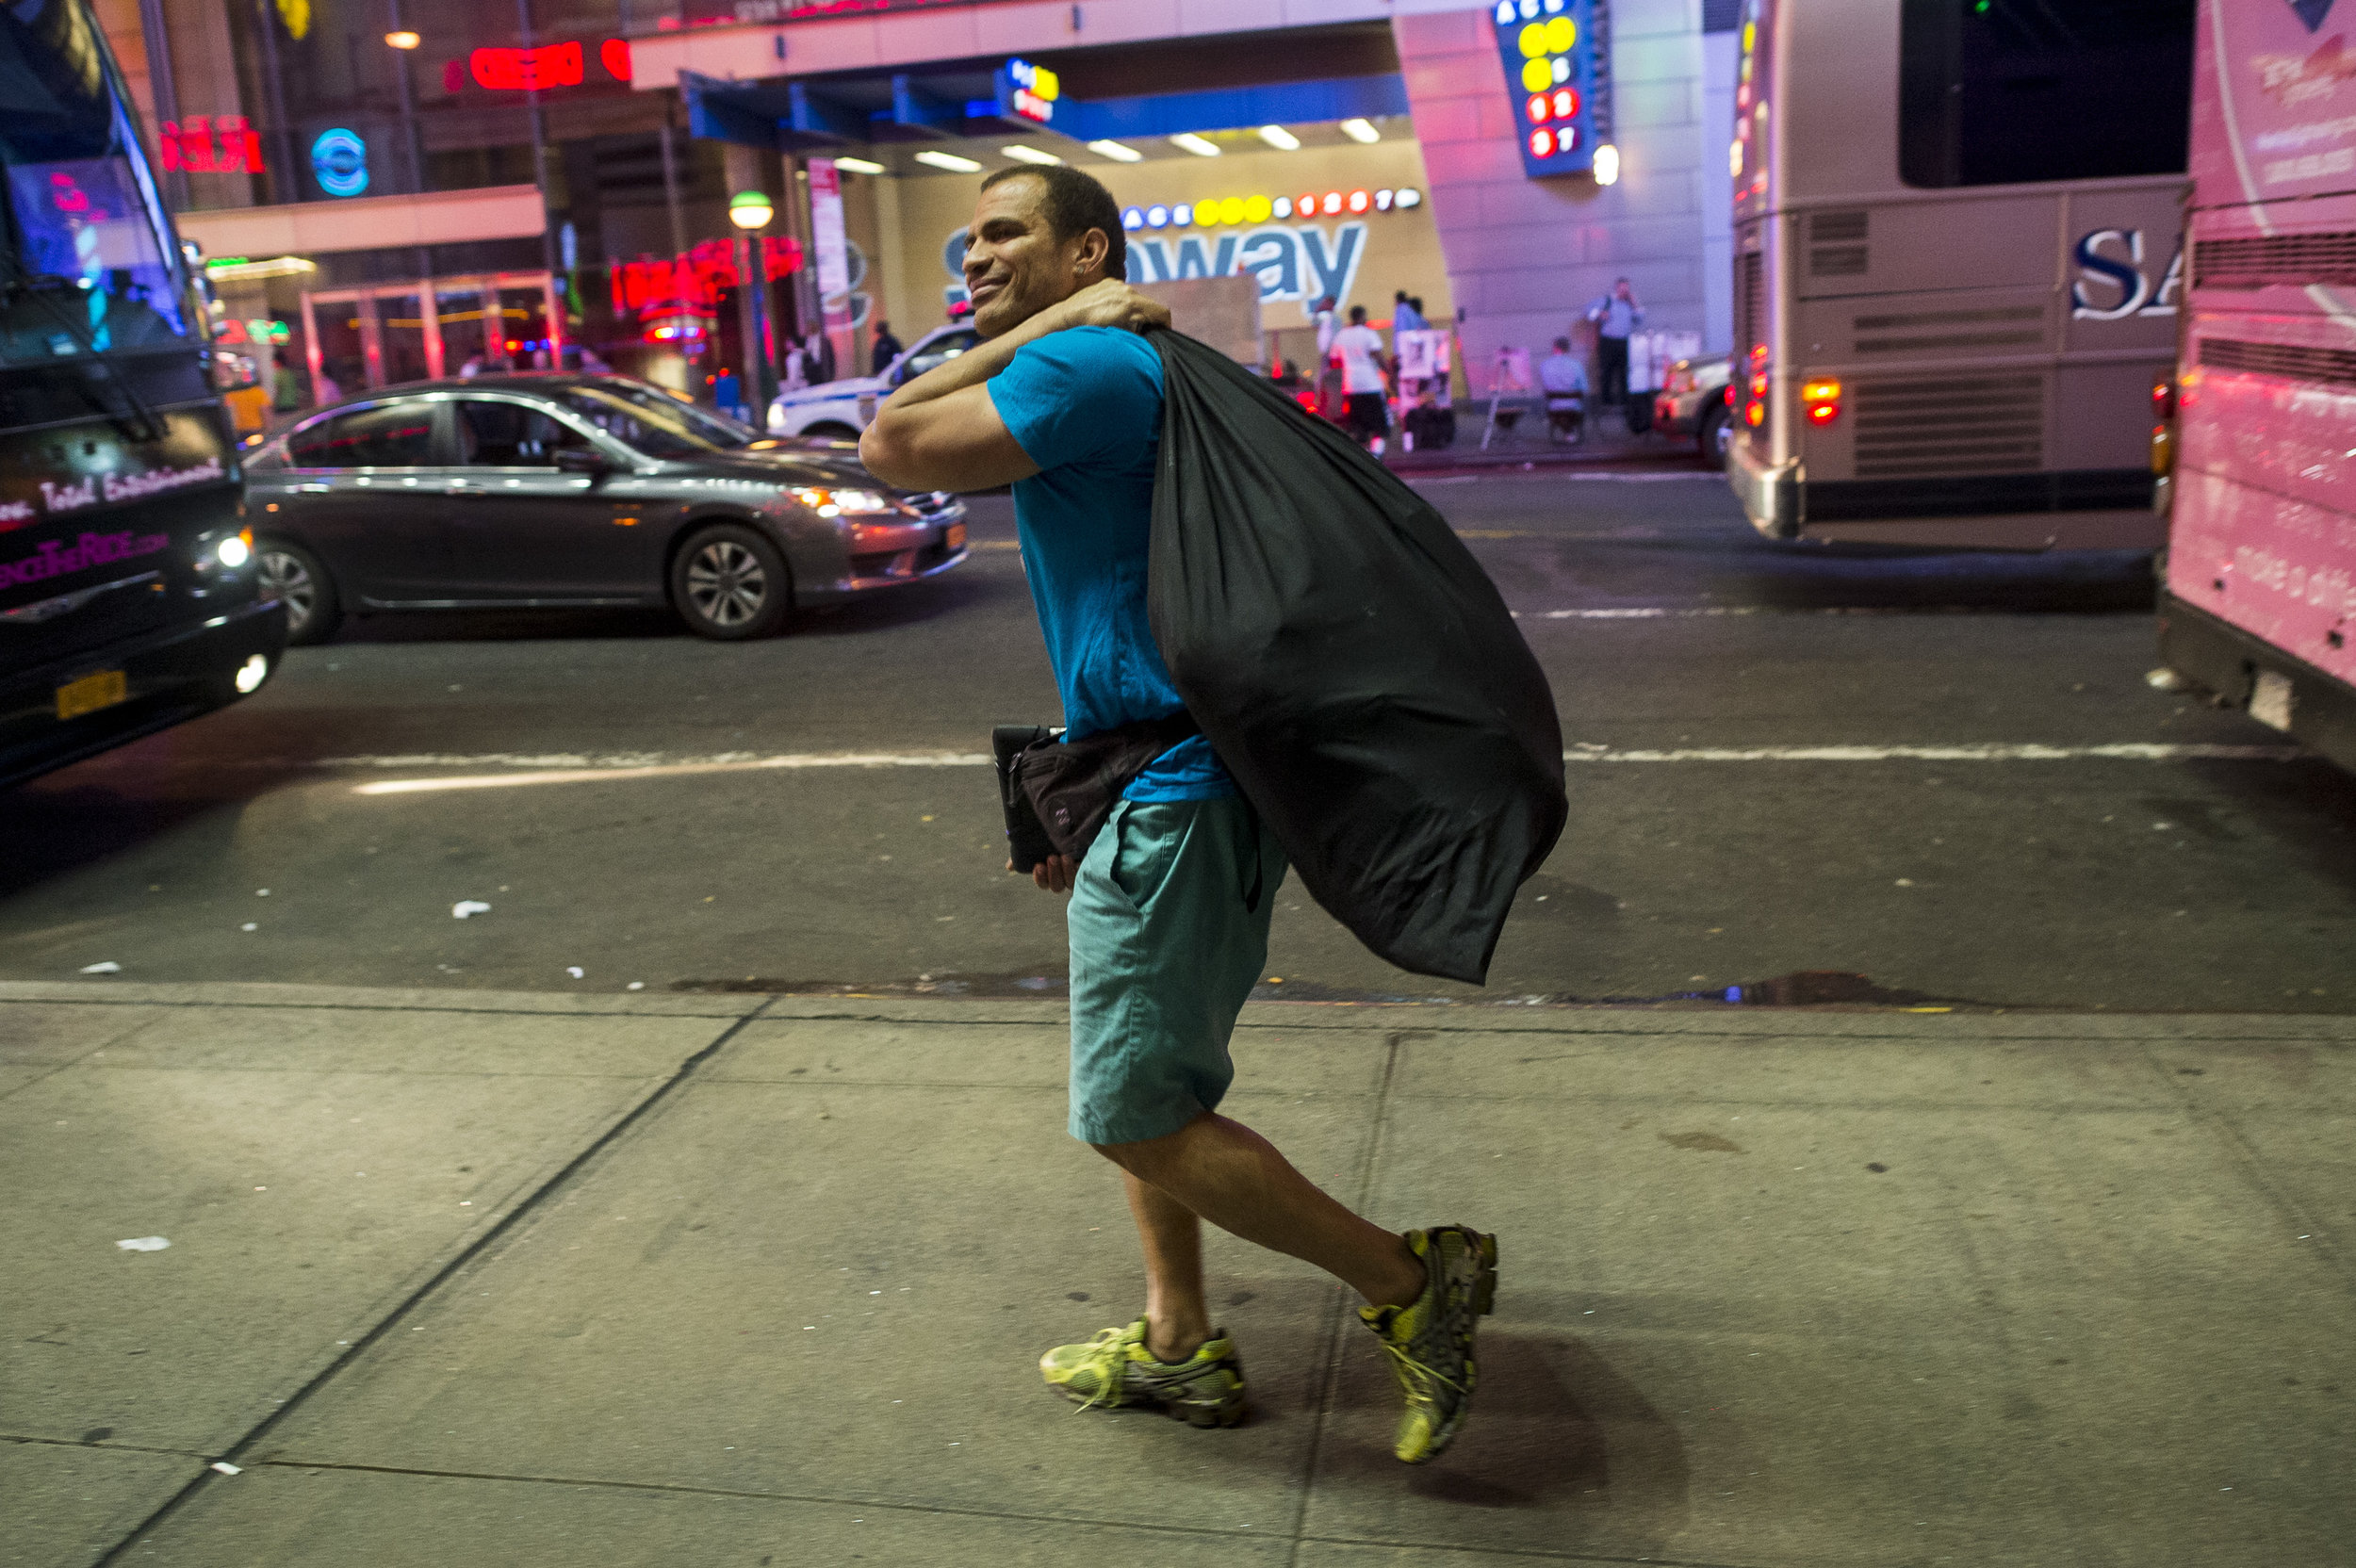 Jose carries his Batman costume as he makes his way towards home at the end of his shift in Times Square.